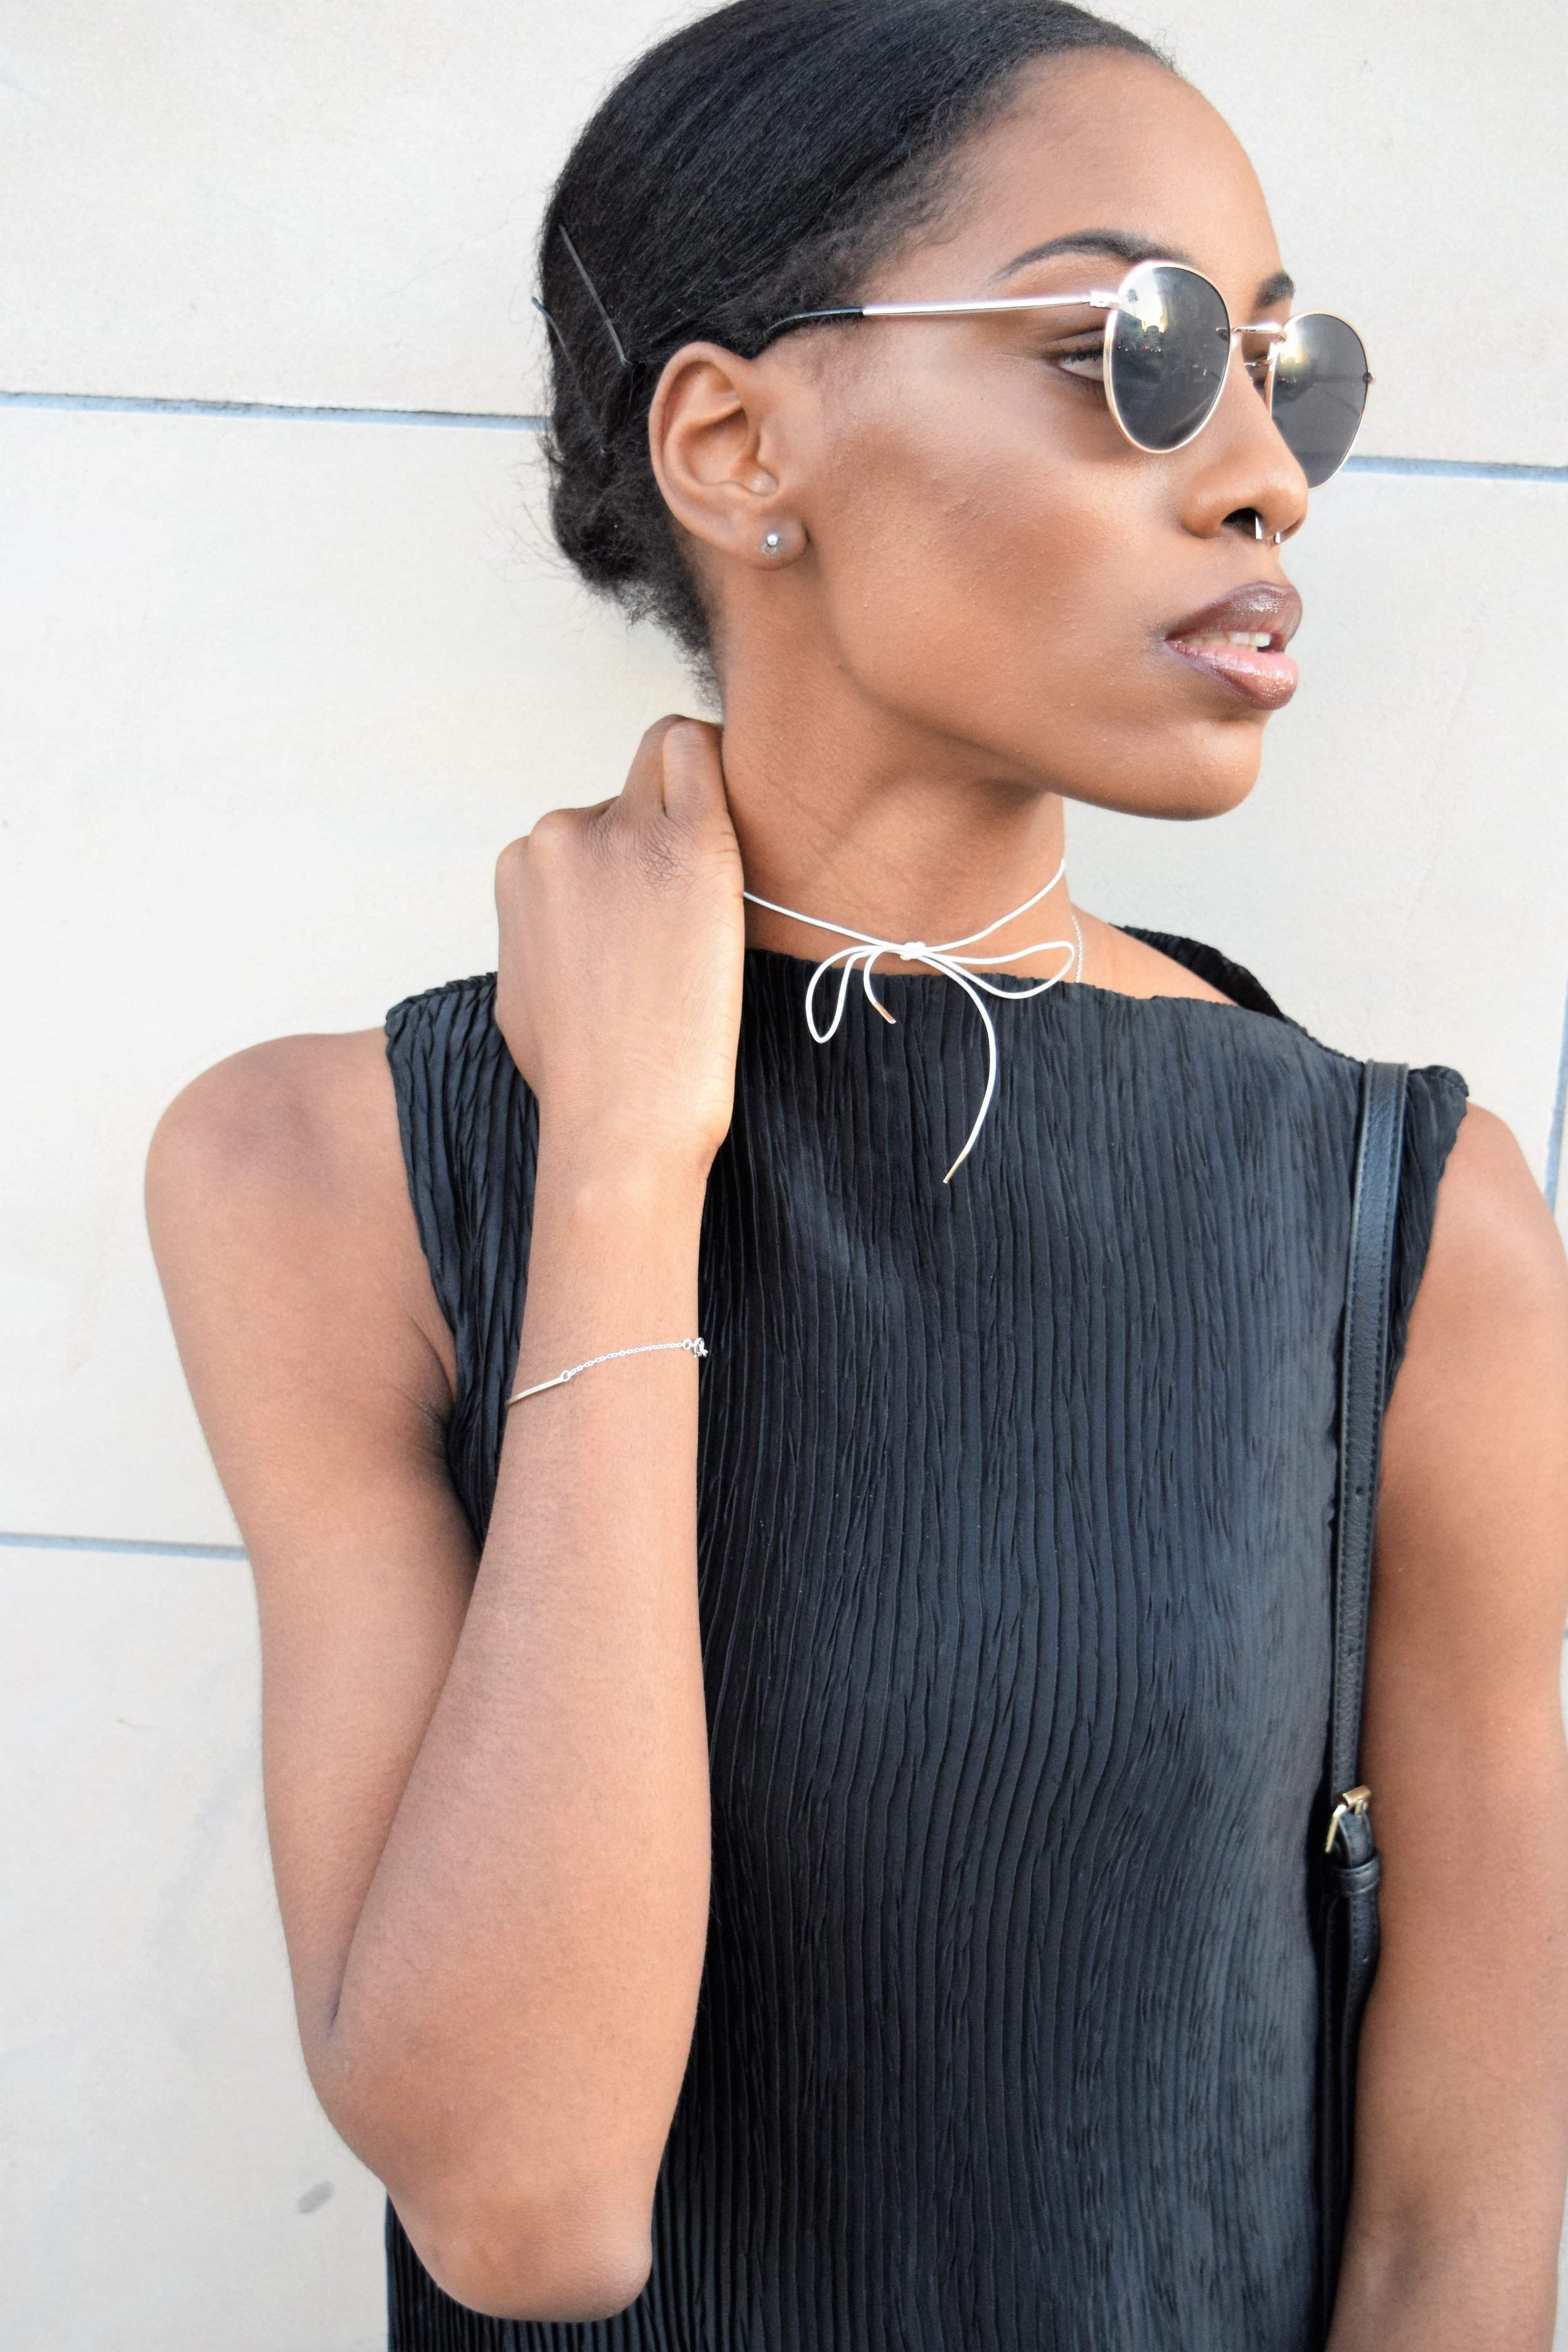 Poppy Chain Designs Third Form Minimal Style Daily